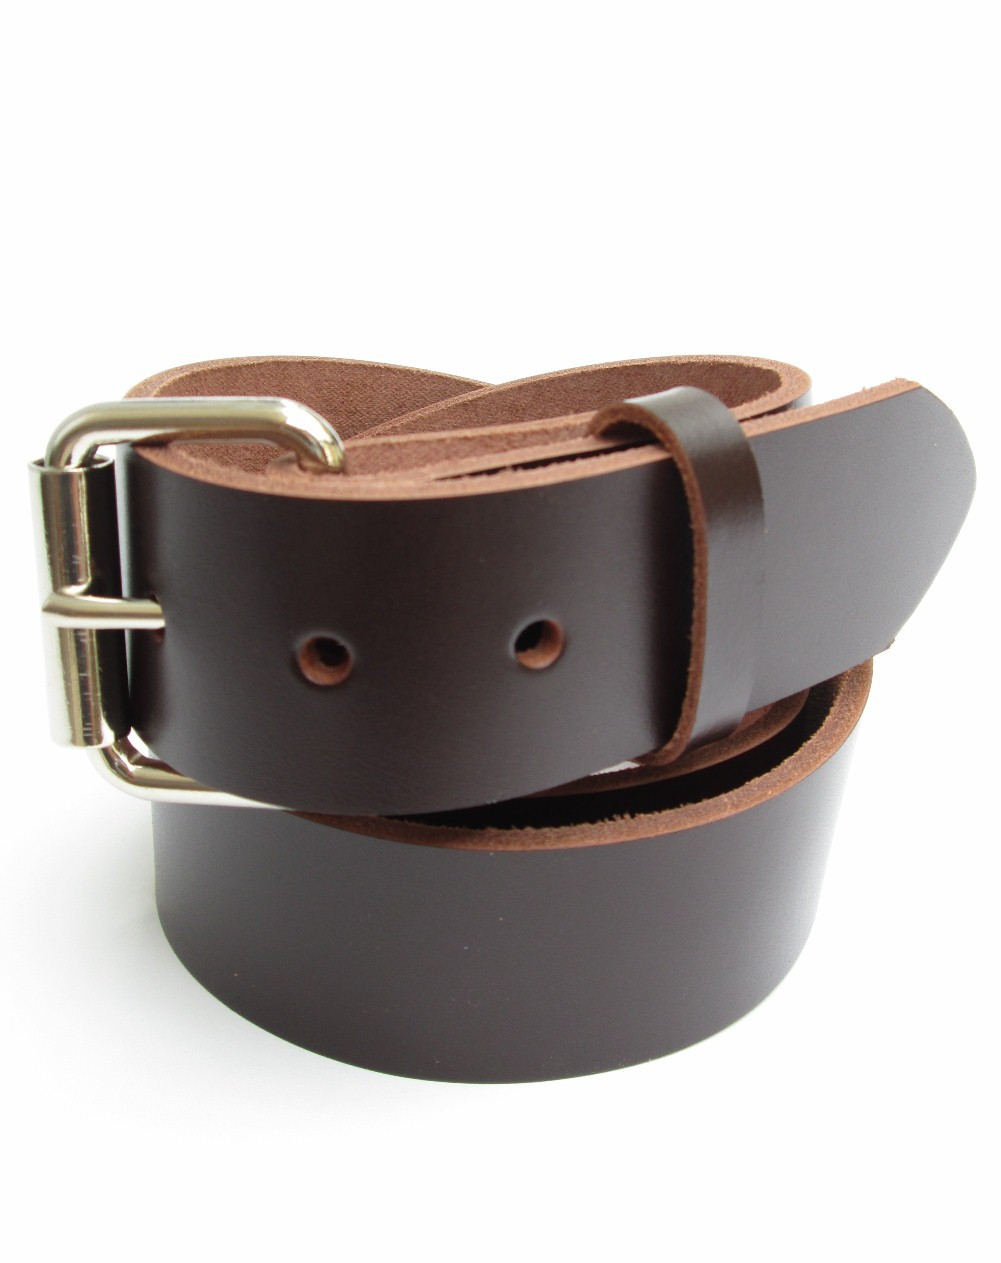 "32/"" HANDMADE 1 3//4/"" WIDE BLACK LEATHER BELTS WITH CONCHOS AND ATTACHED BUCKLE"